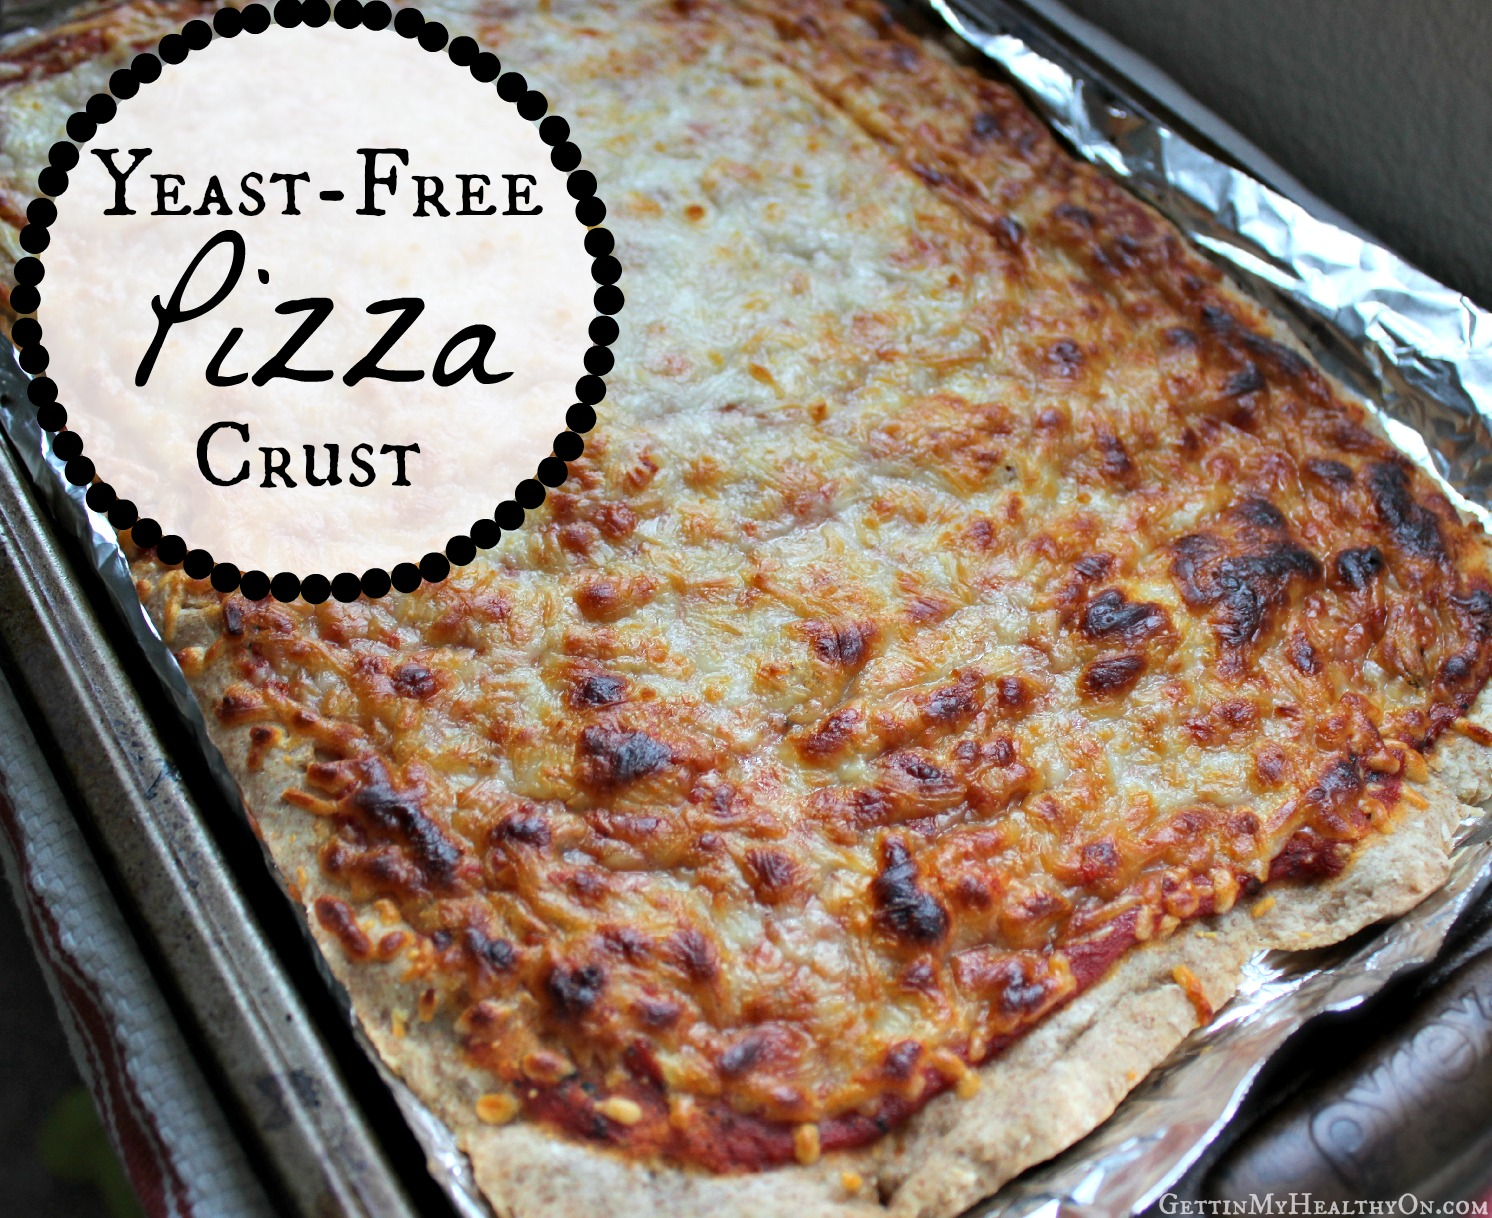 Yeast-Free Pizza Crust